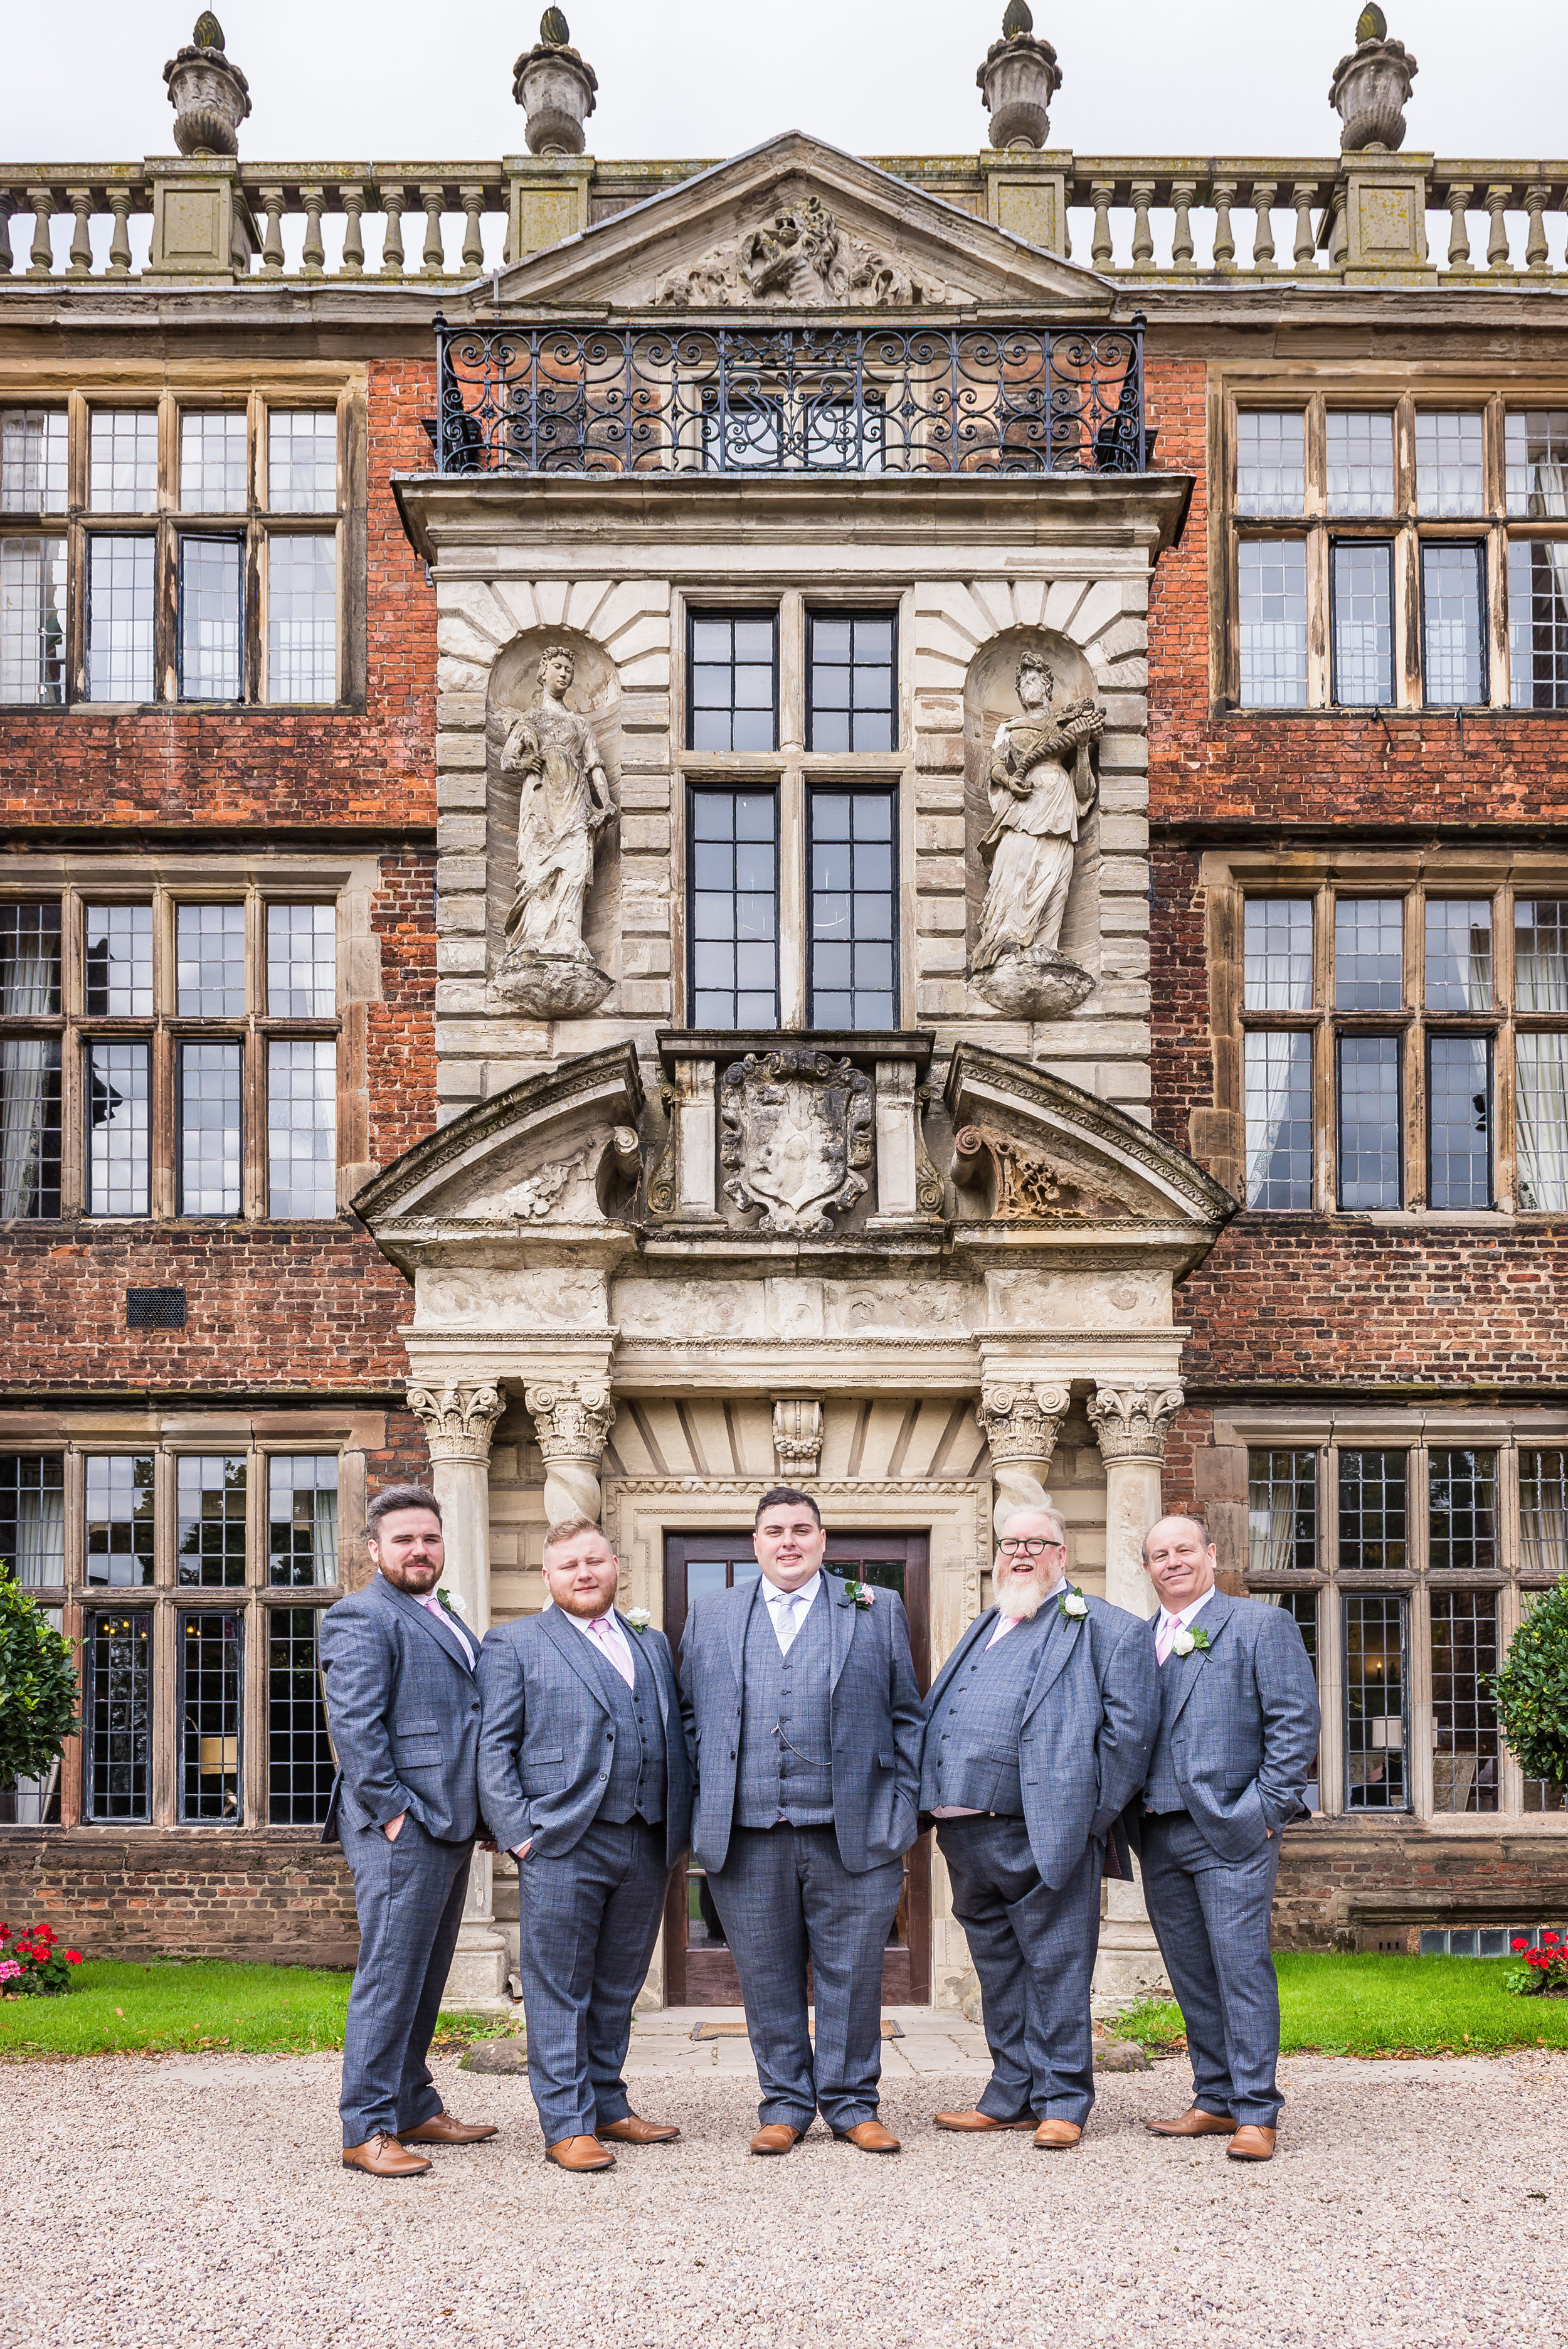 castle Bromwich hall hotel wedding photography groom and groomsmen formal portrait